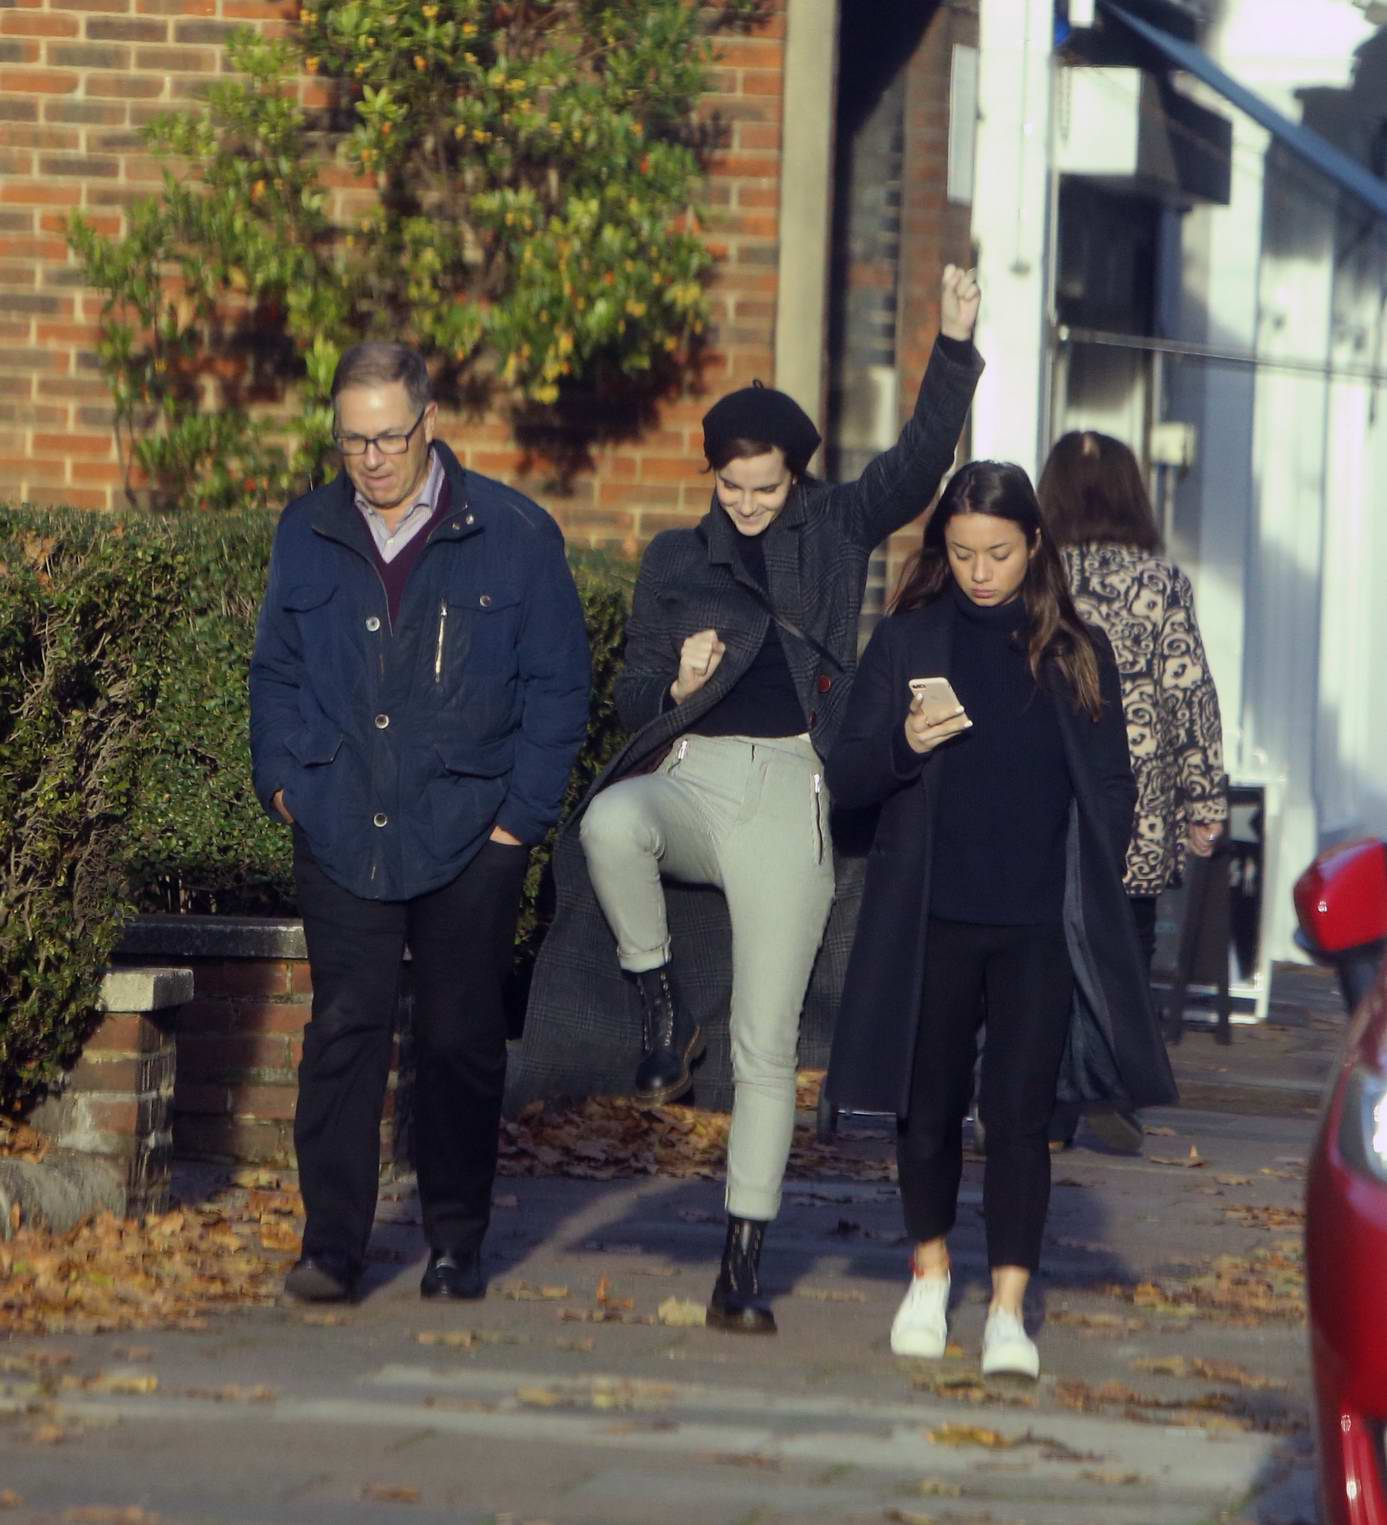 Emma Watson seen messing around and doing a silly dance while out walking with friends in North London